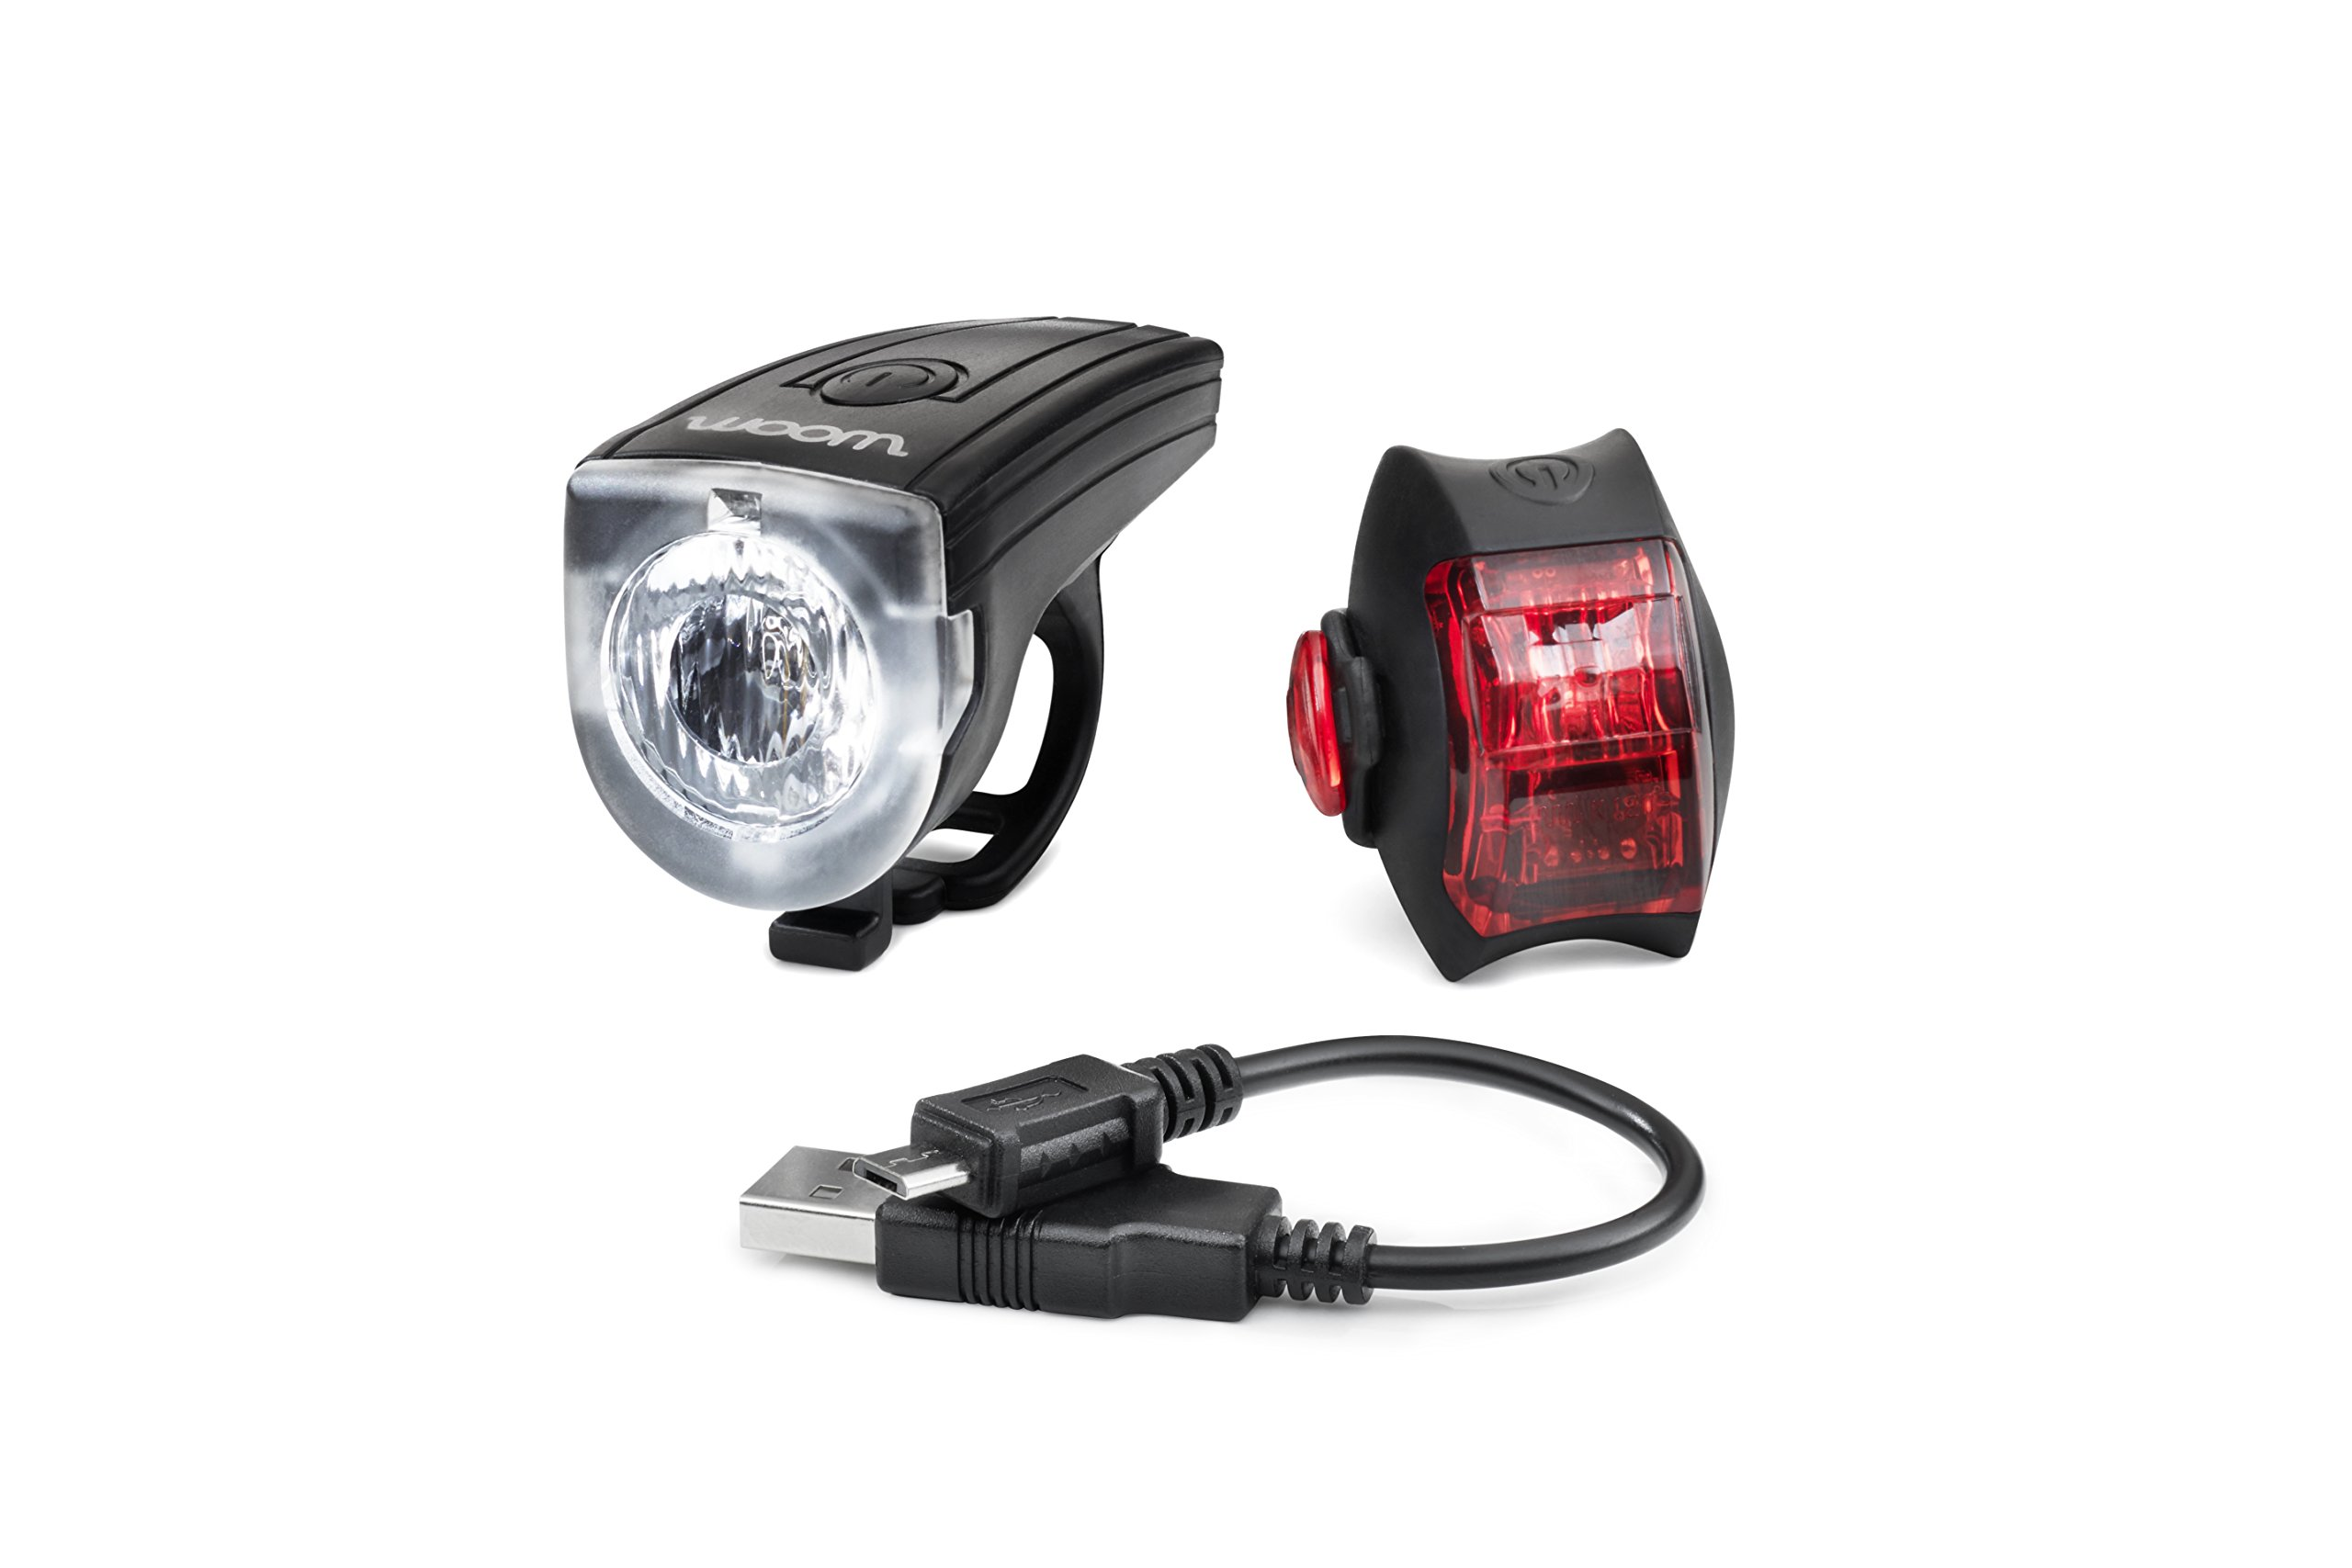 woom Bicycle Light Front/Rear